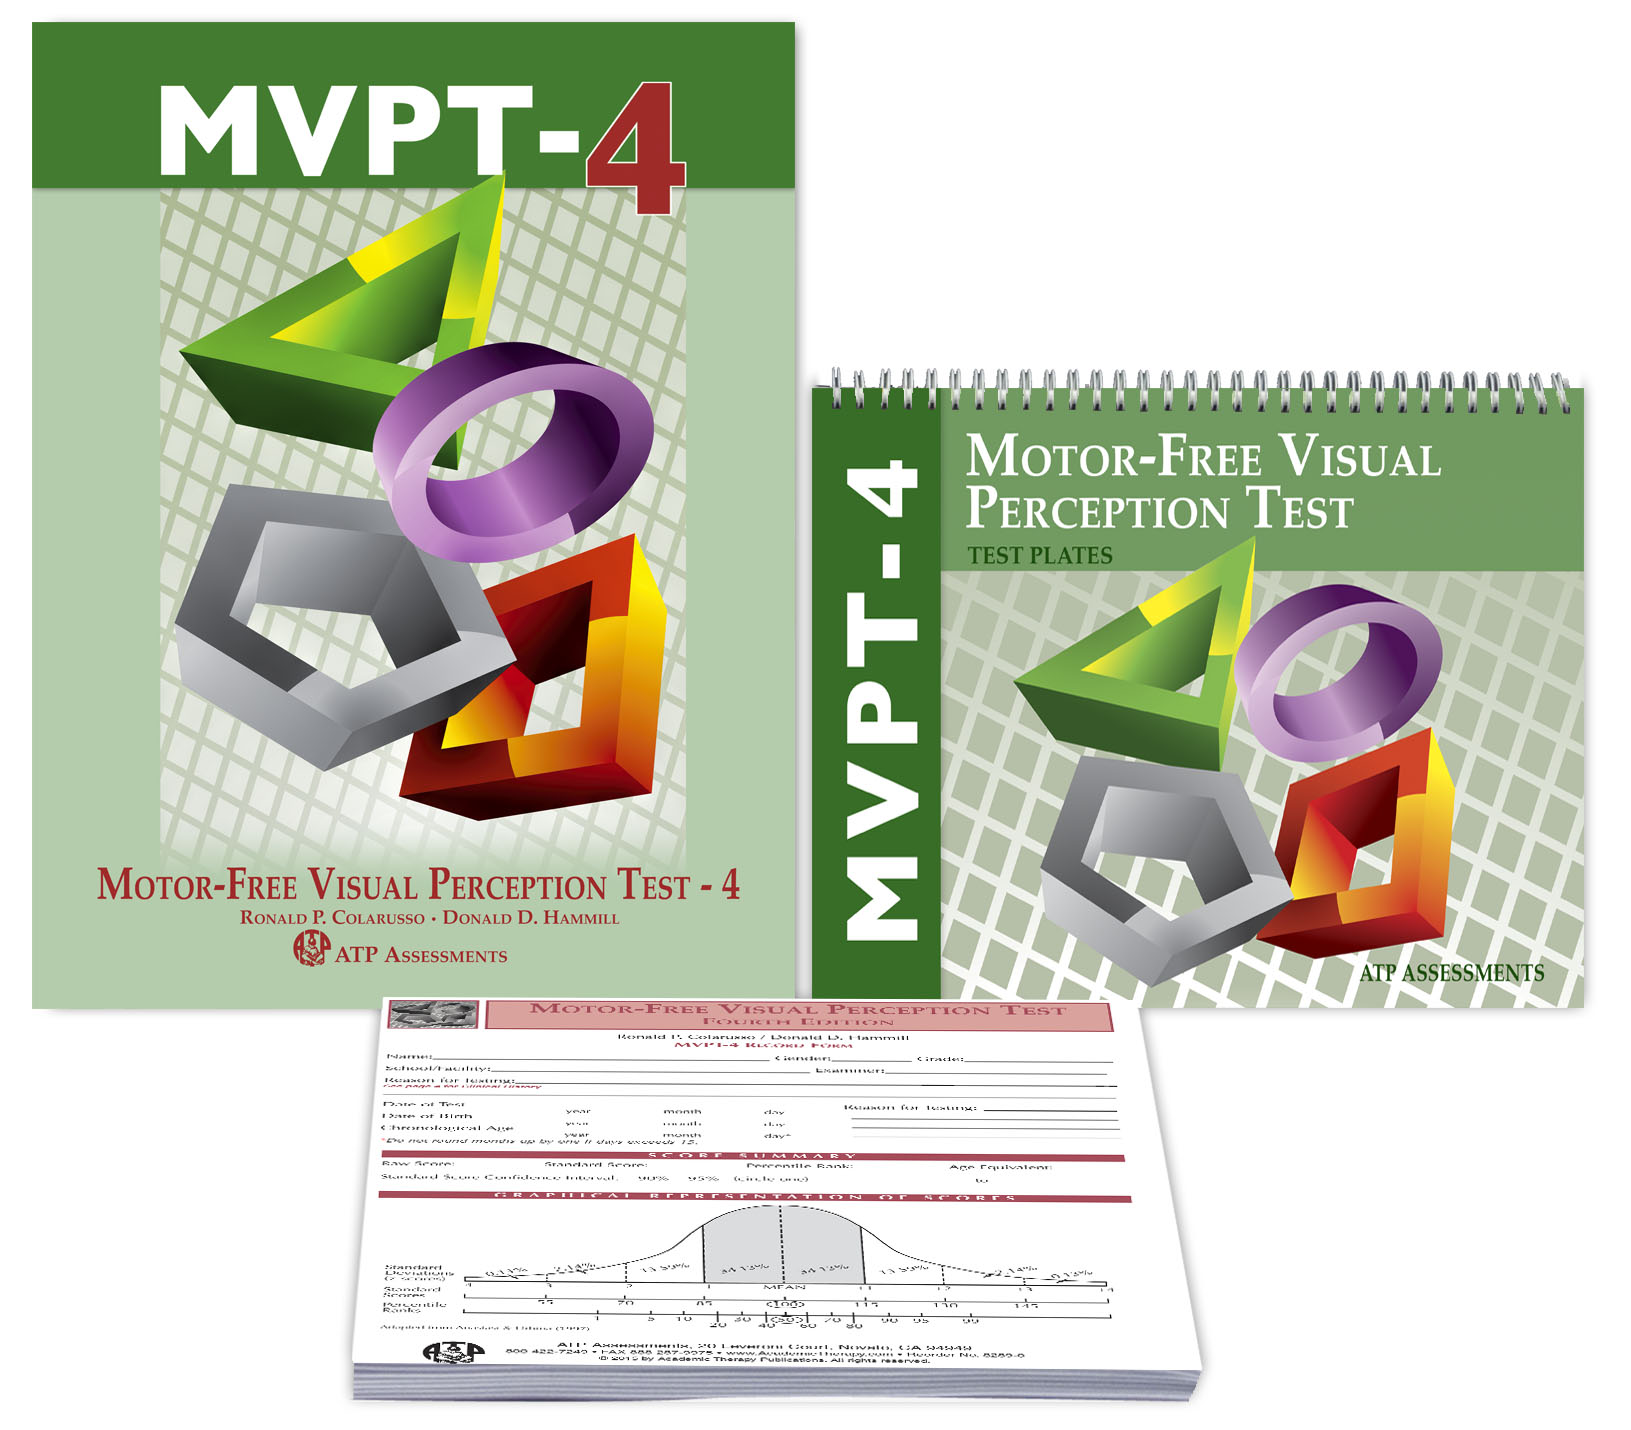 Motor Free Visual Perceptual Test - 4th Edition